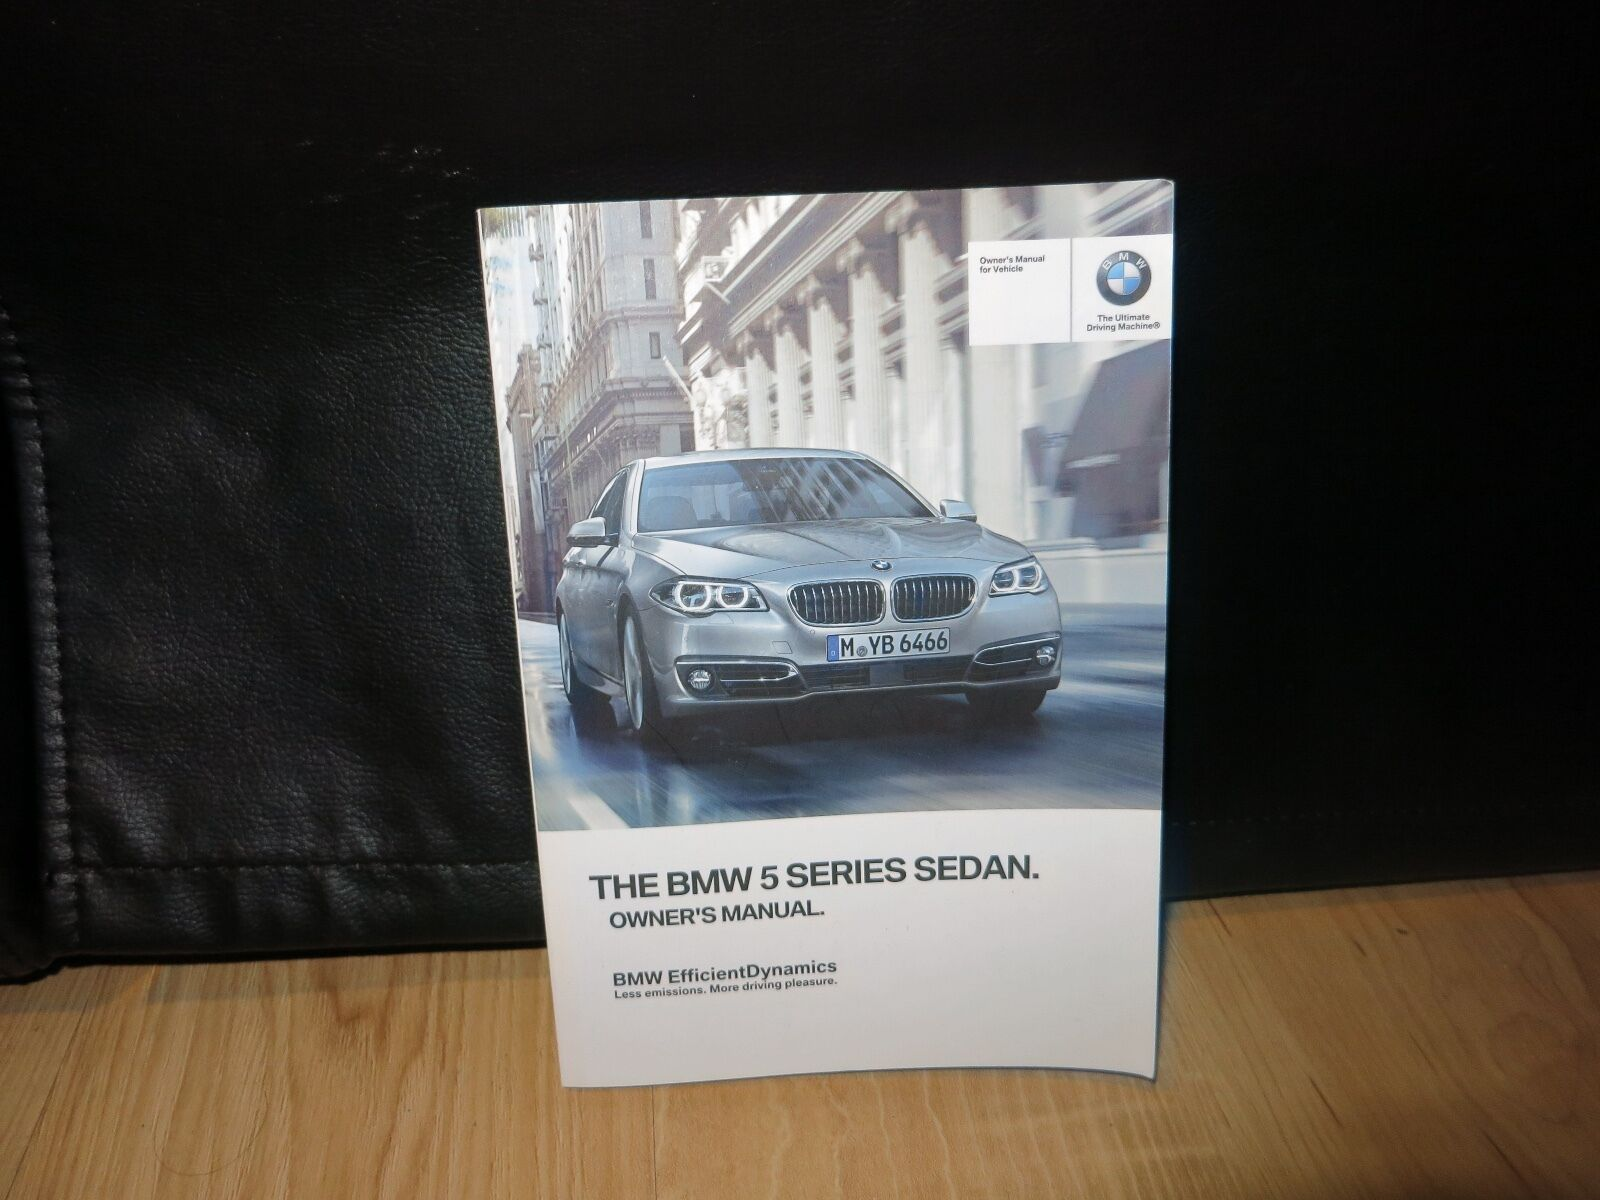 2016 Bmw 5 Series Sedan Owners Manual Book ( Oem )